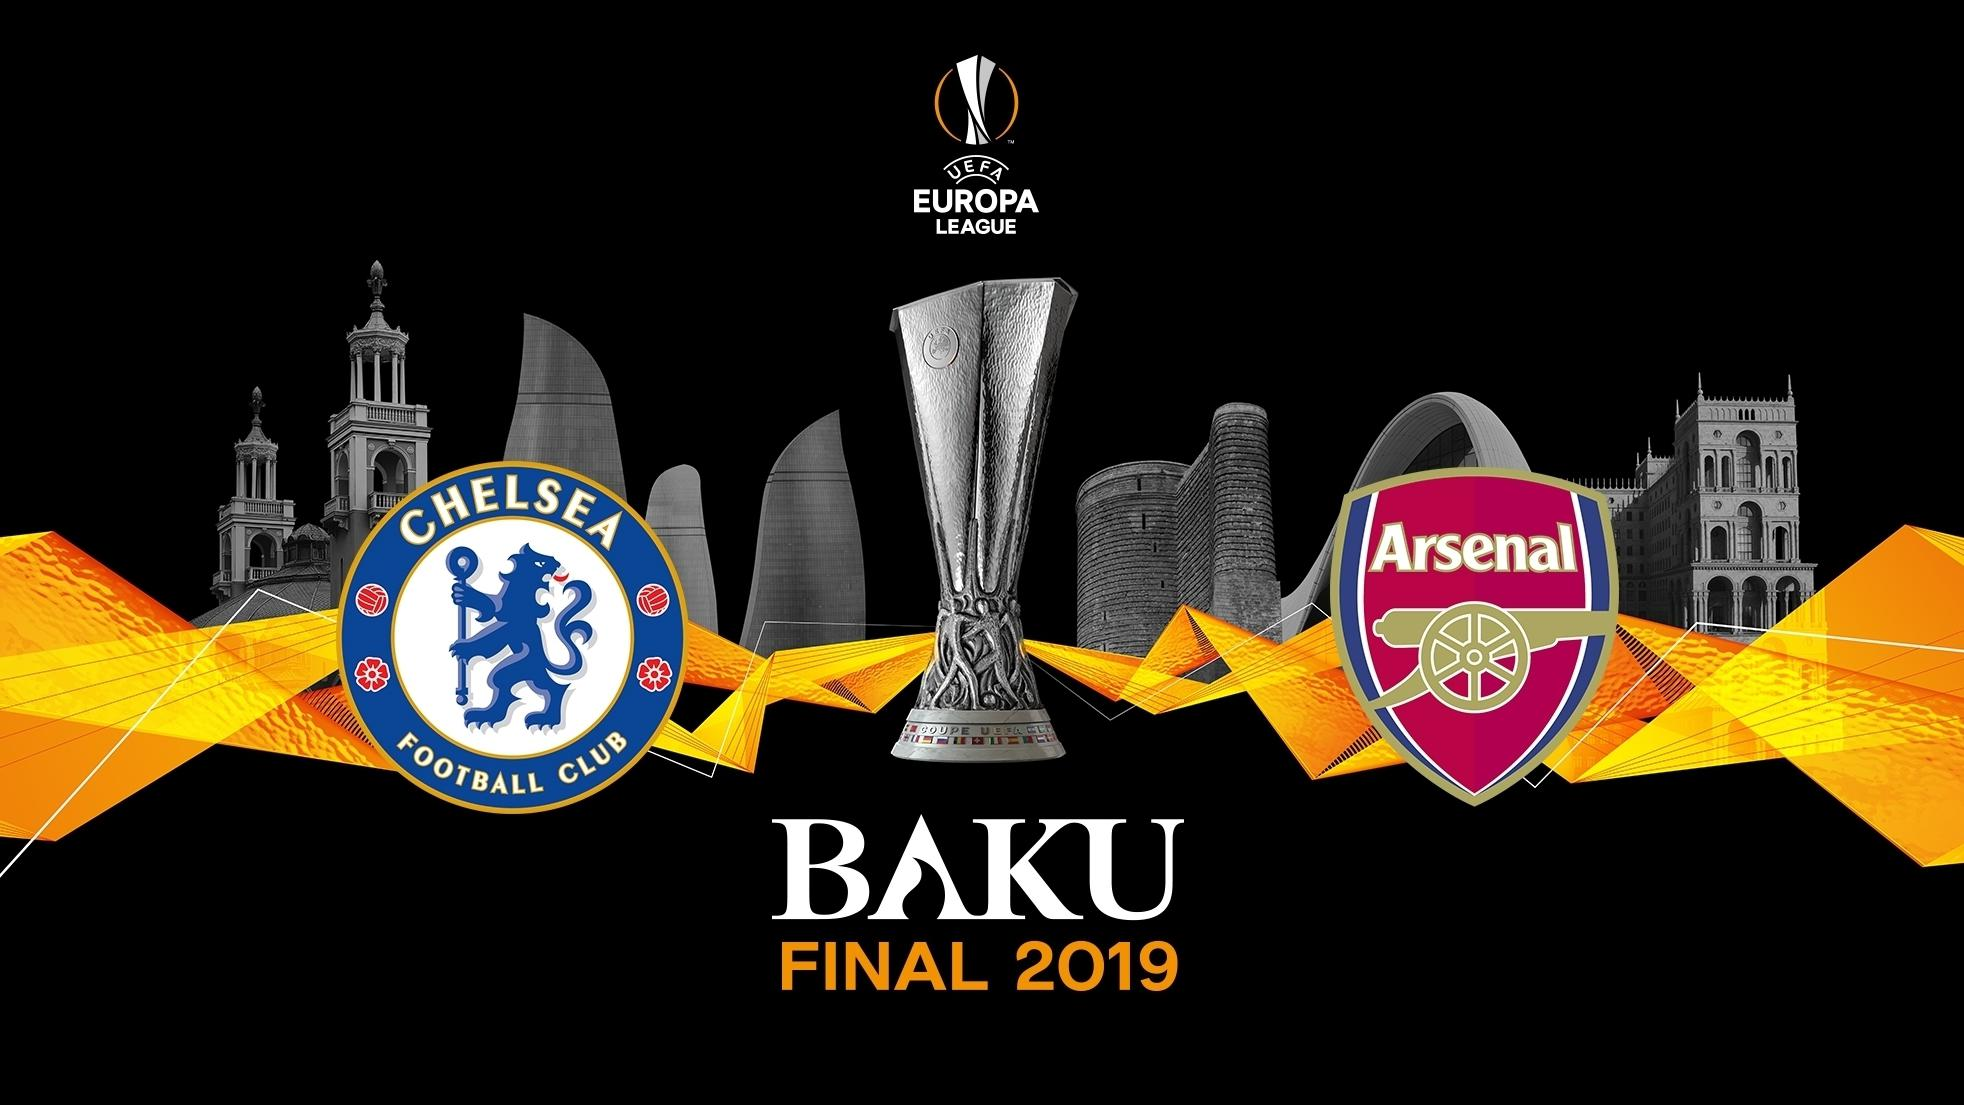 all you need to know uefa europa league final uefa europa league uefa com uefa europa league final